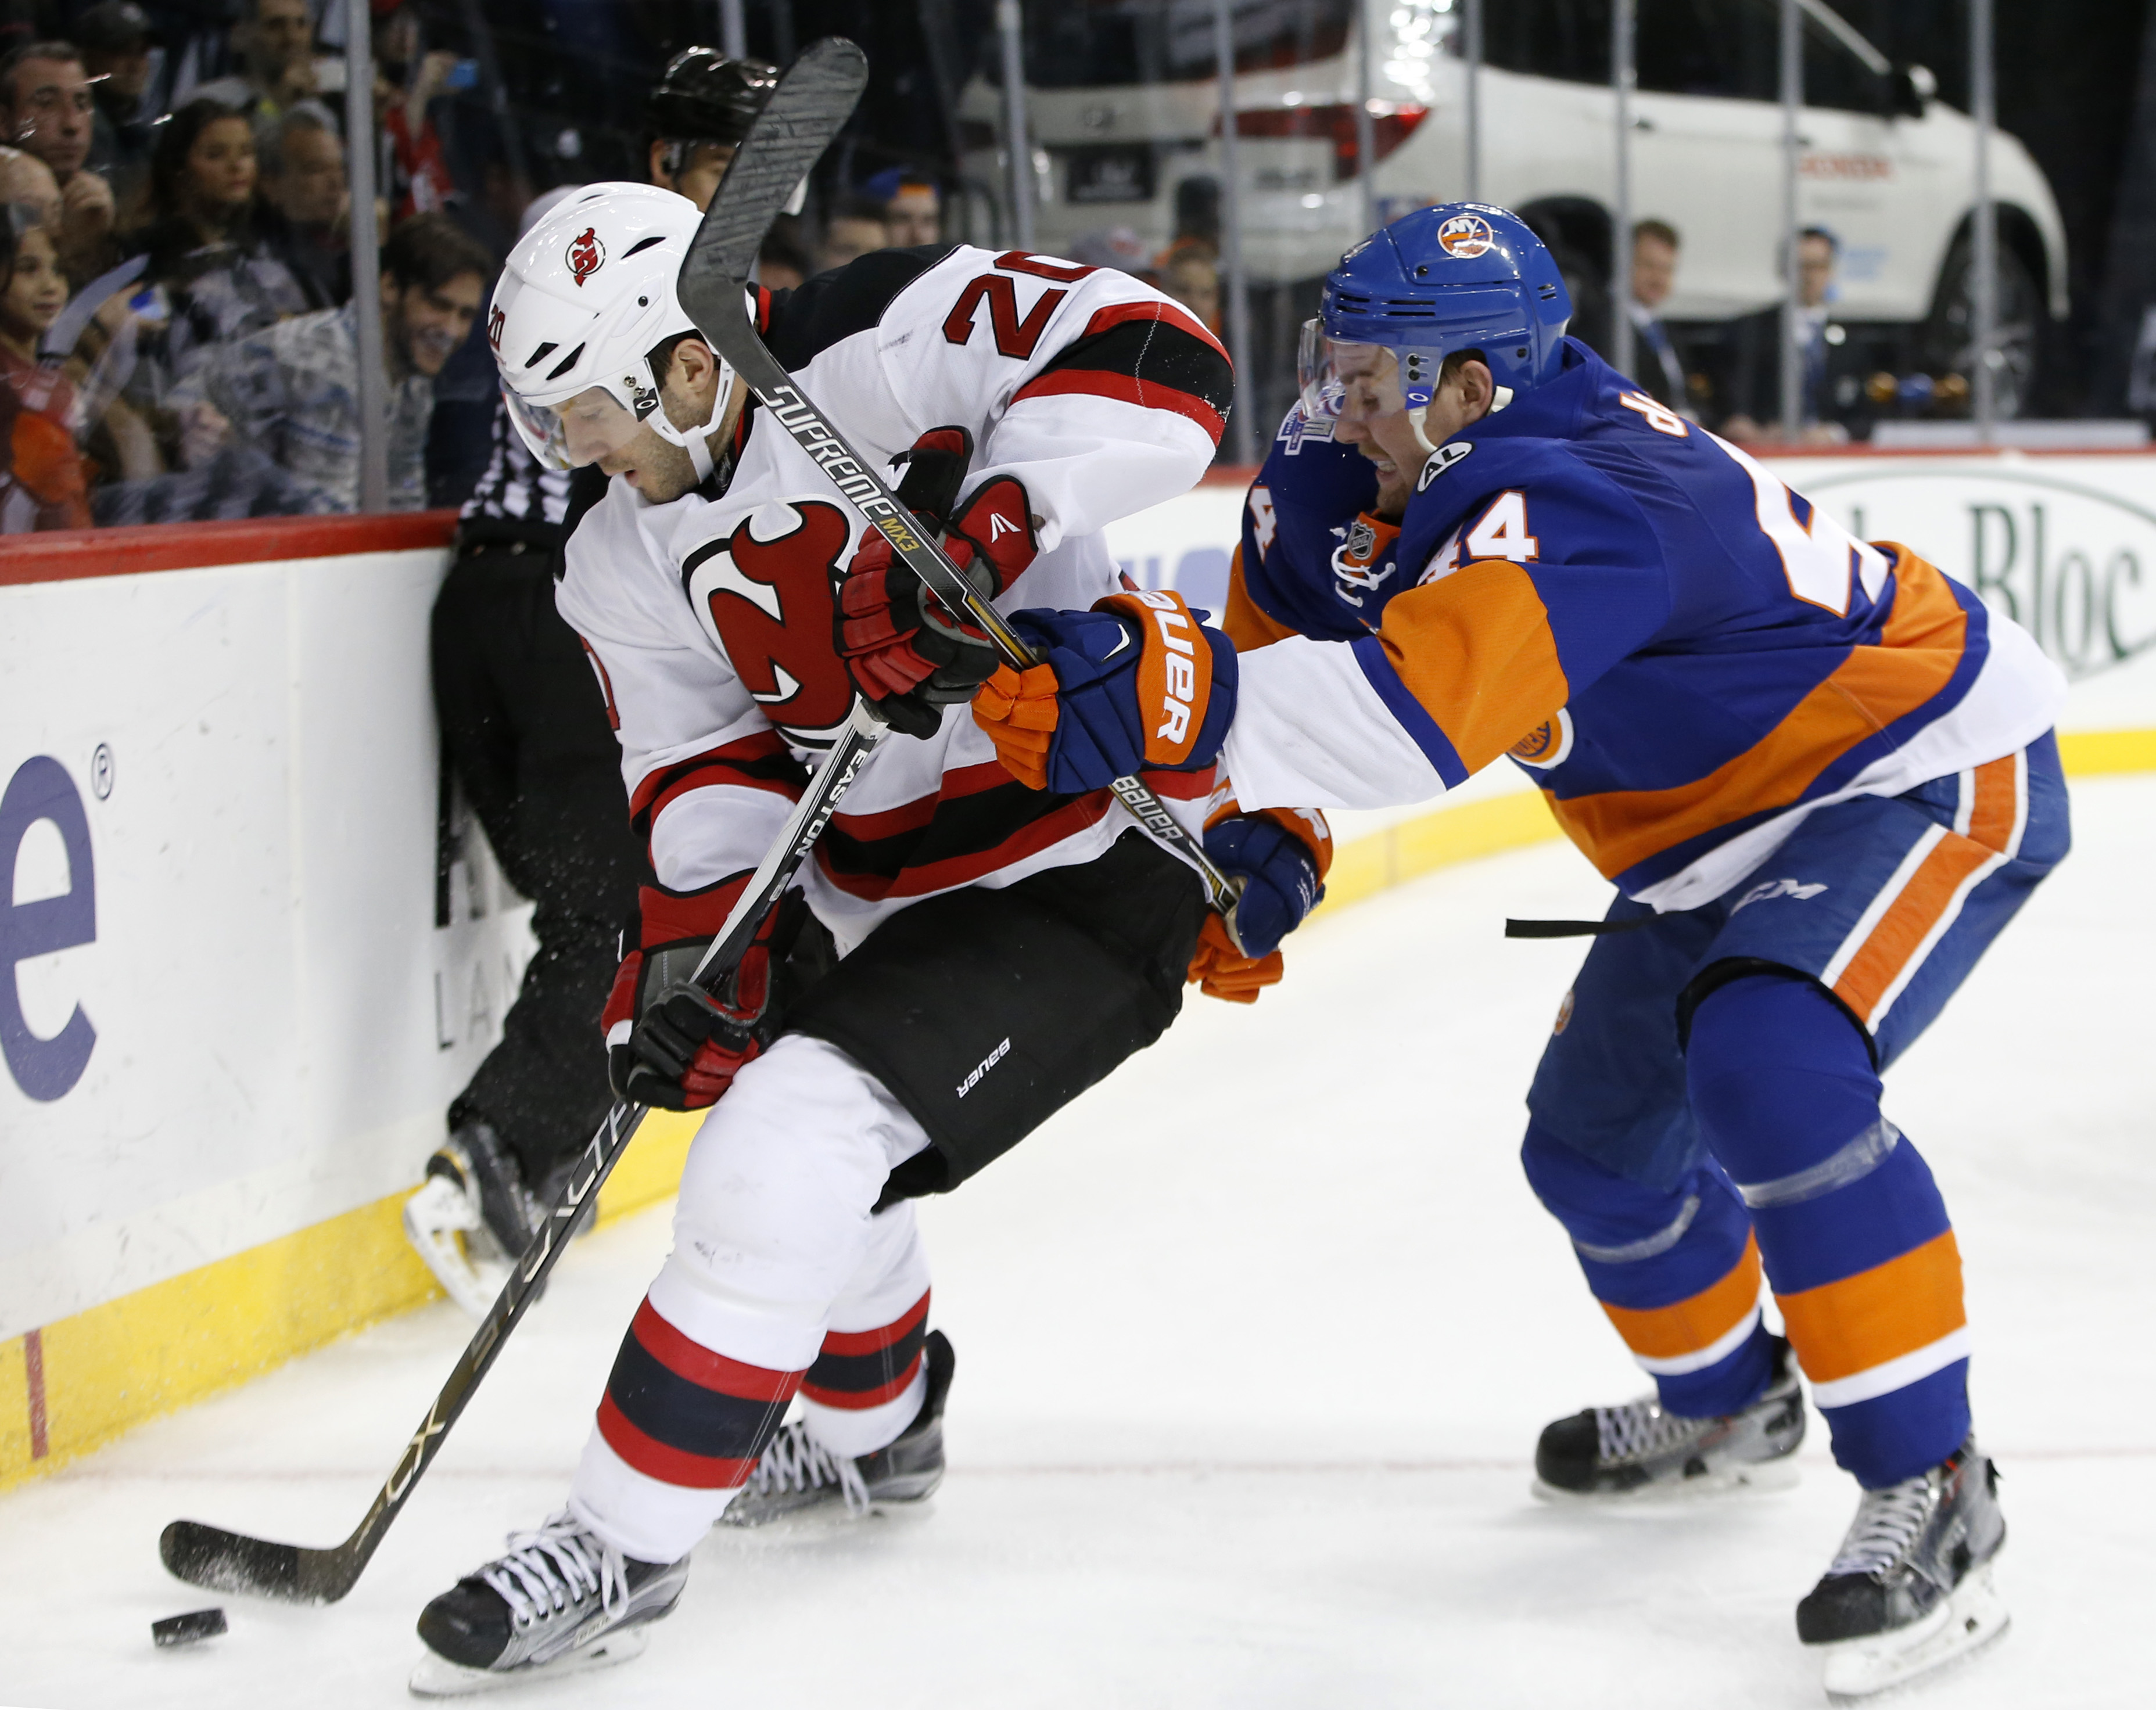 New York Islanders defenseman Calvin de Haan (44) defends against New Jersey Devils right wing Lee Stempniak (20) in the third period of an NHL hockey game in New York, Sunday, Dec. 13, 2015.  The Islanders shut out the Devils 4-0. (AP Photo/Kathy Willens